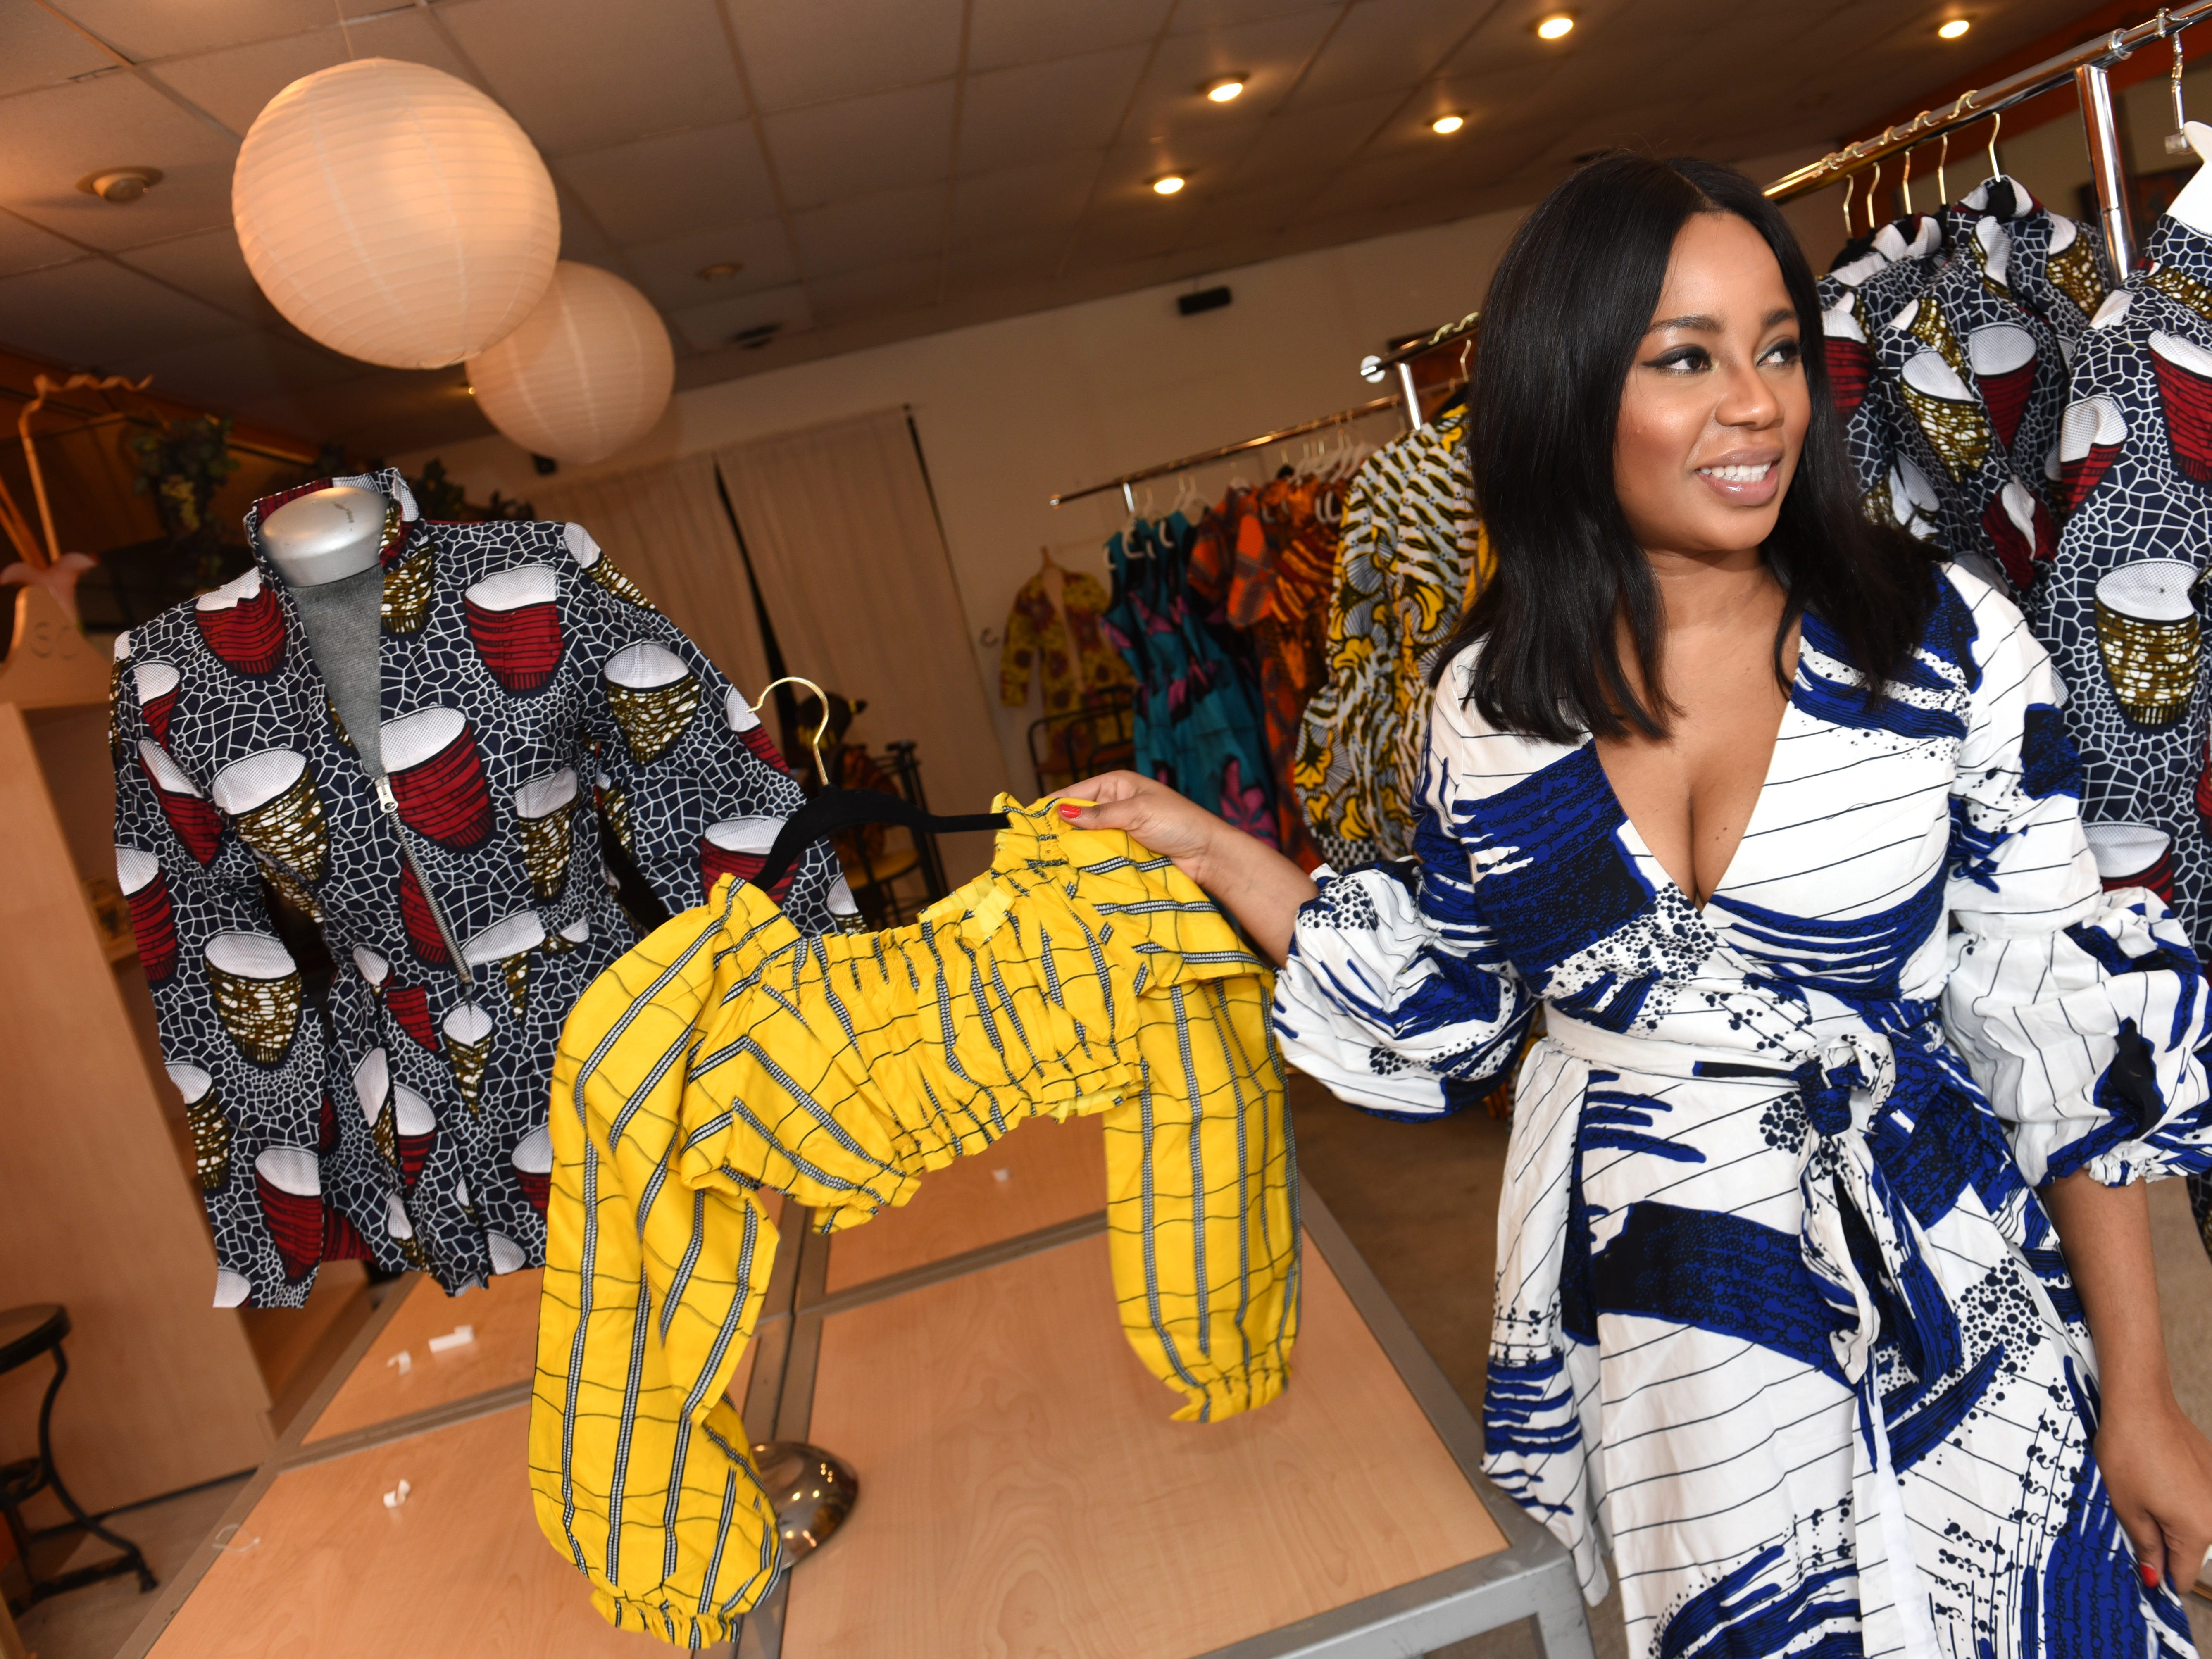 Matilda Harry, owner,  MohoStyle, shows her custom fashions at a pop-up store along the Avenue of Fashion on Saturday, November 24, 2018